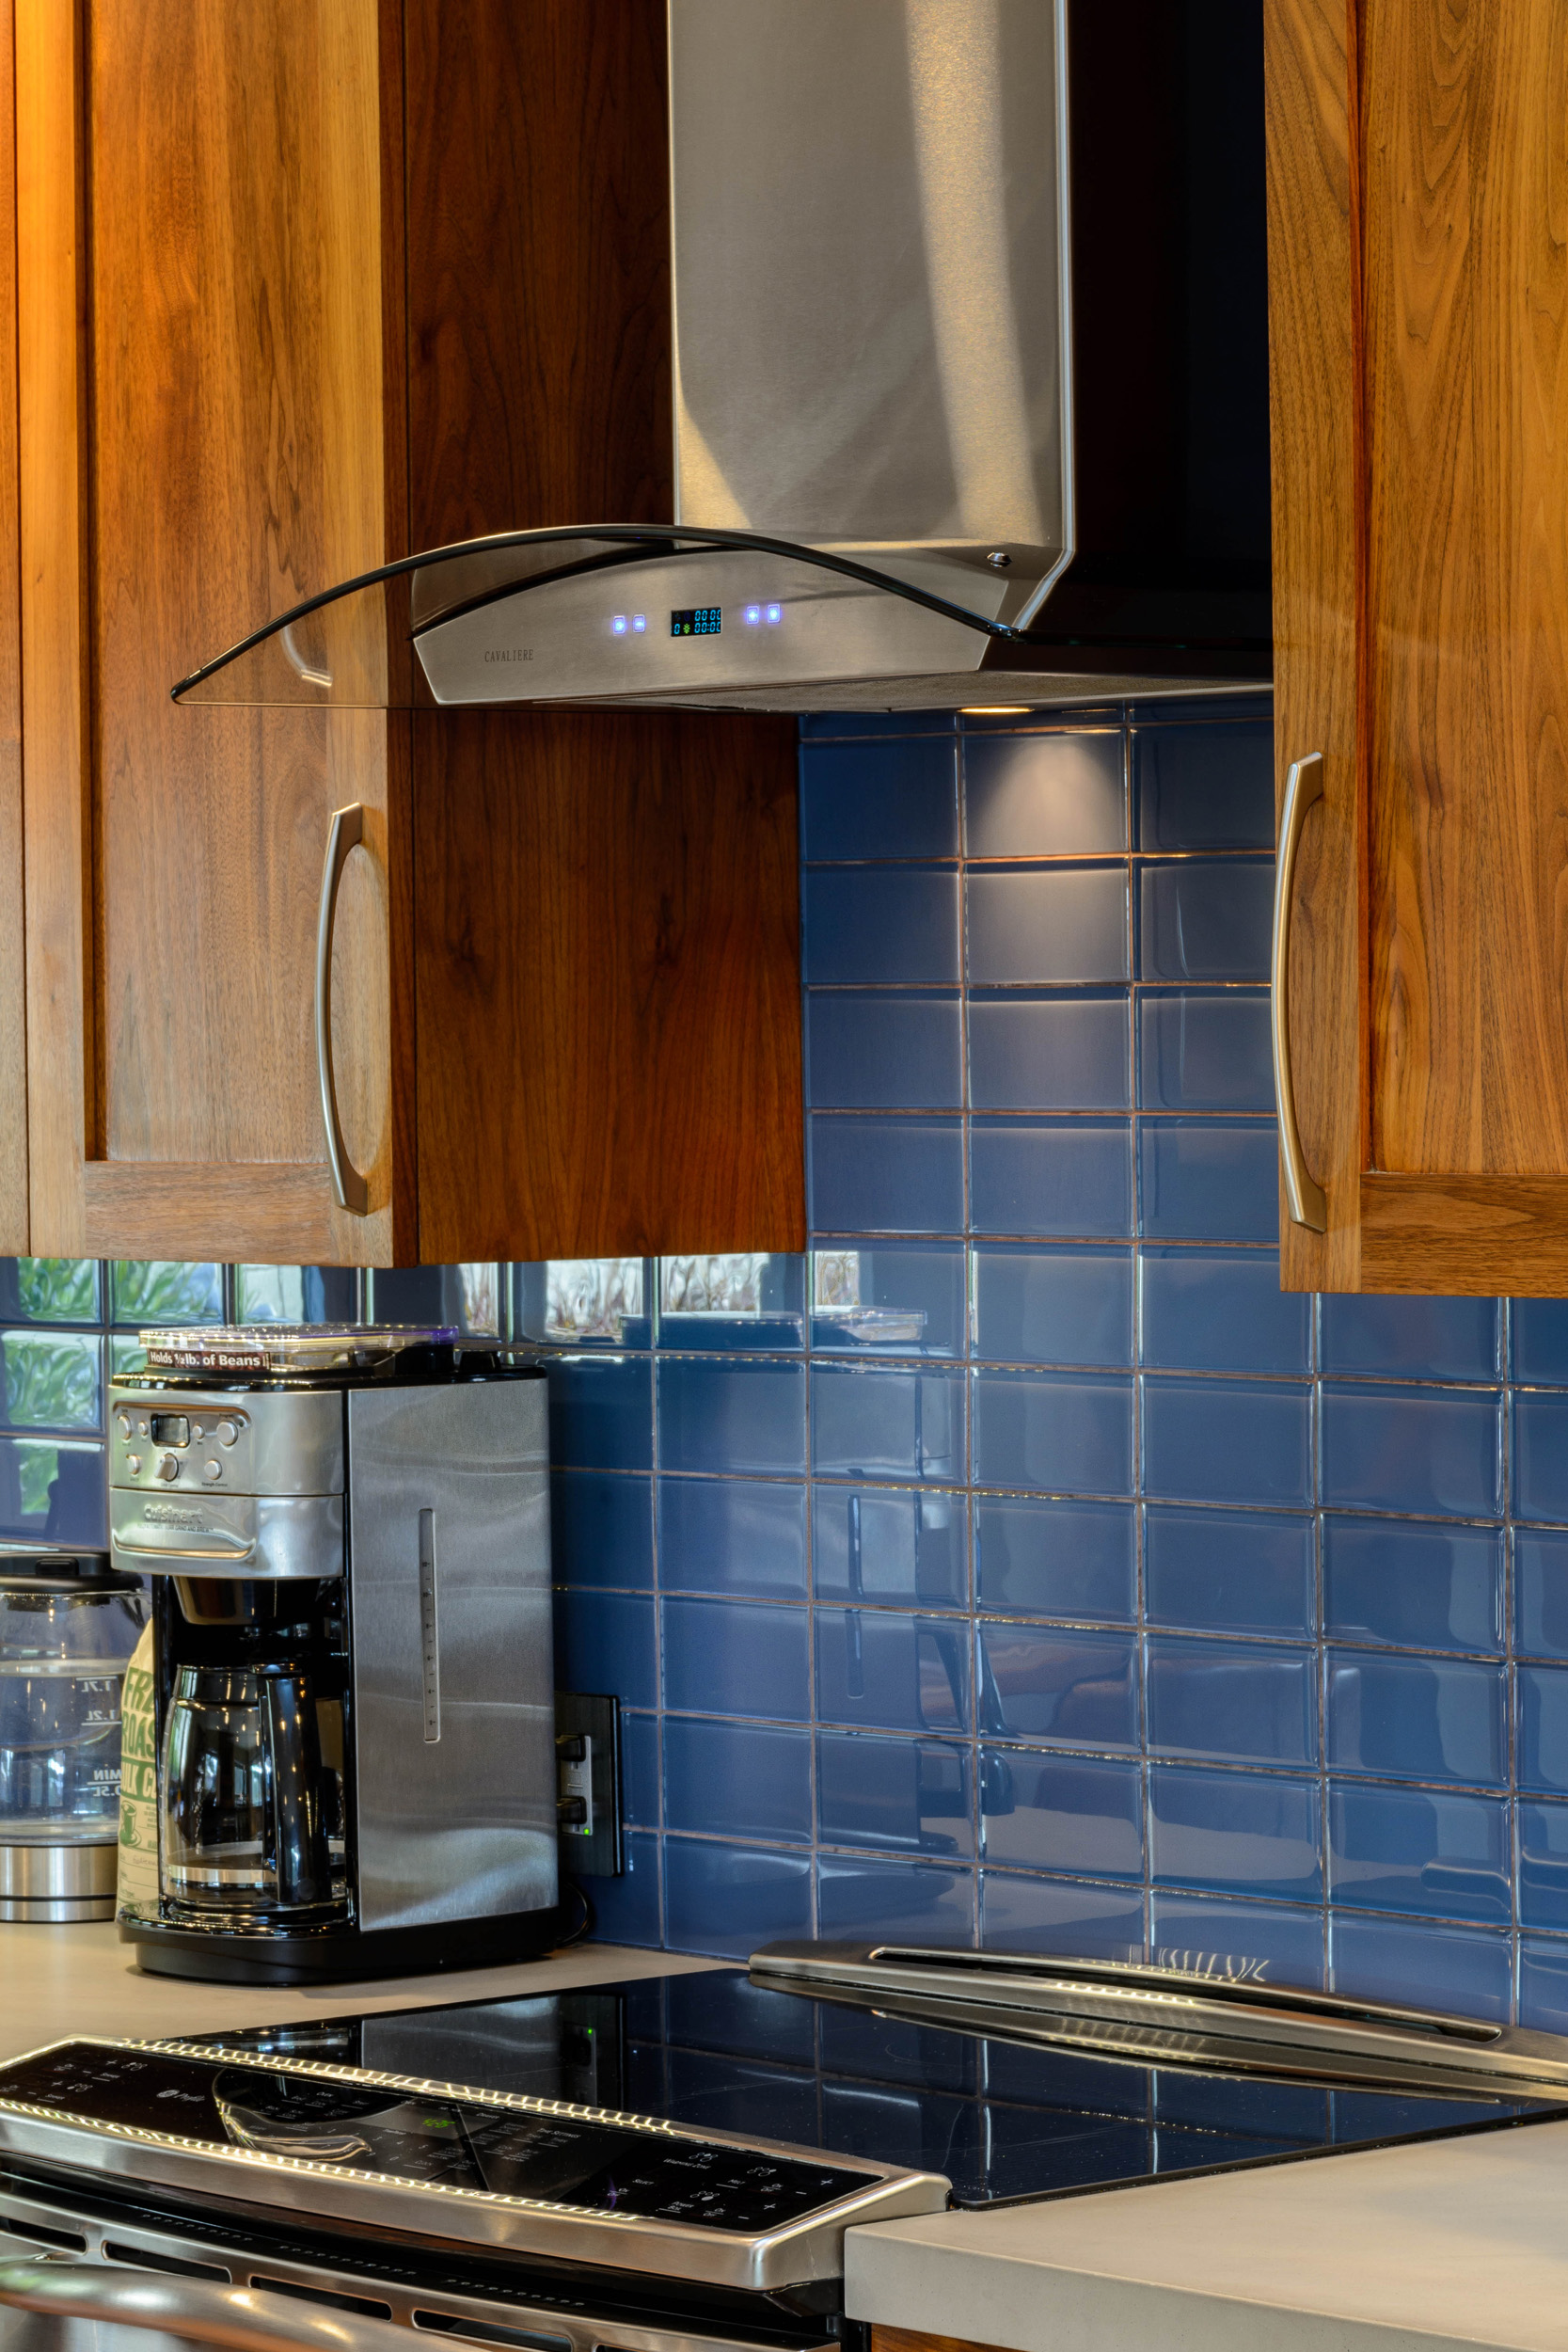 Electric range top with a sleek stainless steel wall-mounted hood and a dark blue glass tile backsplash